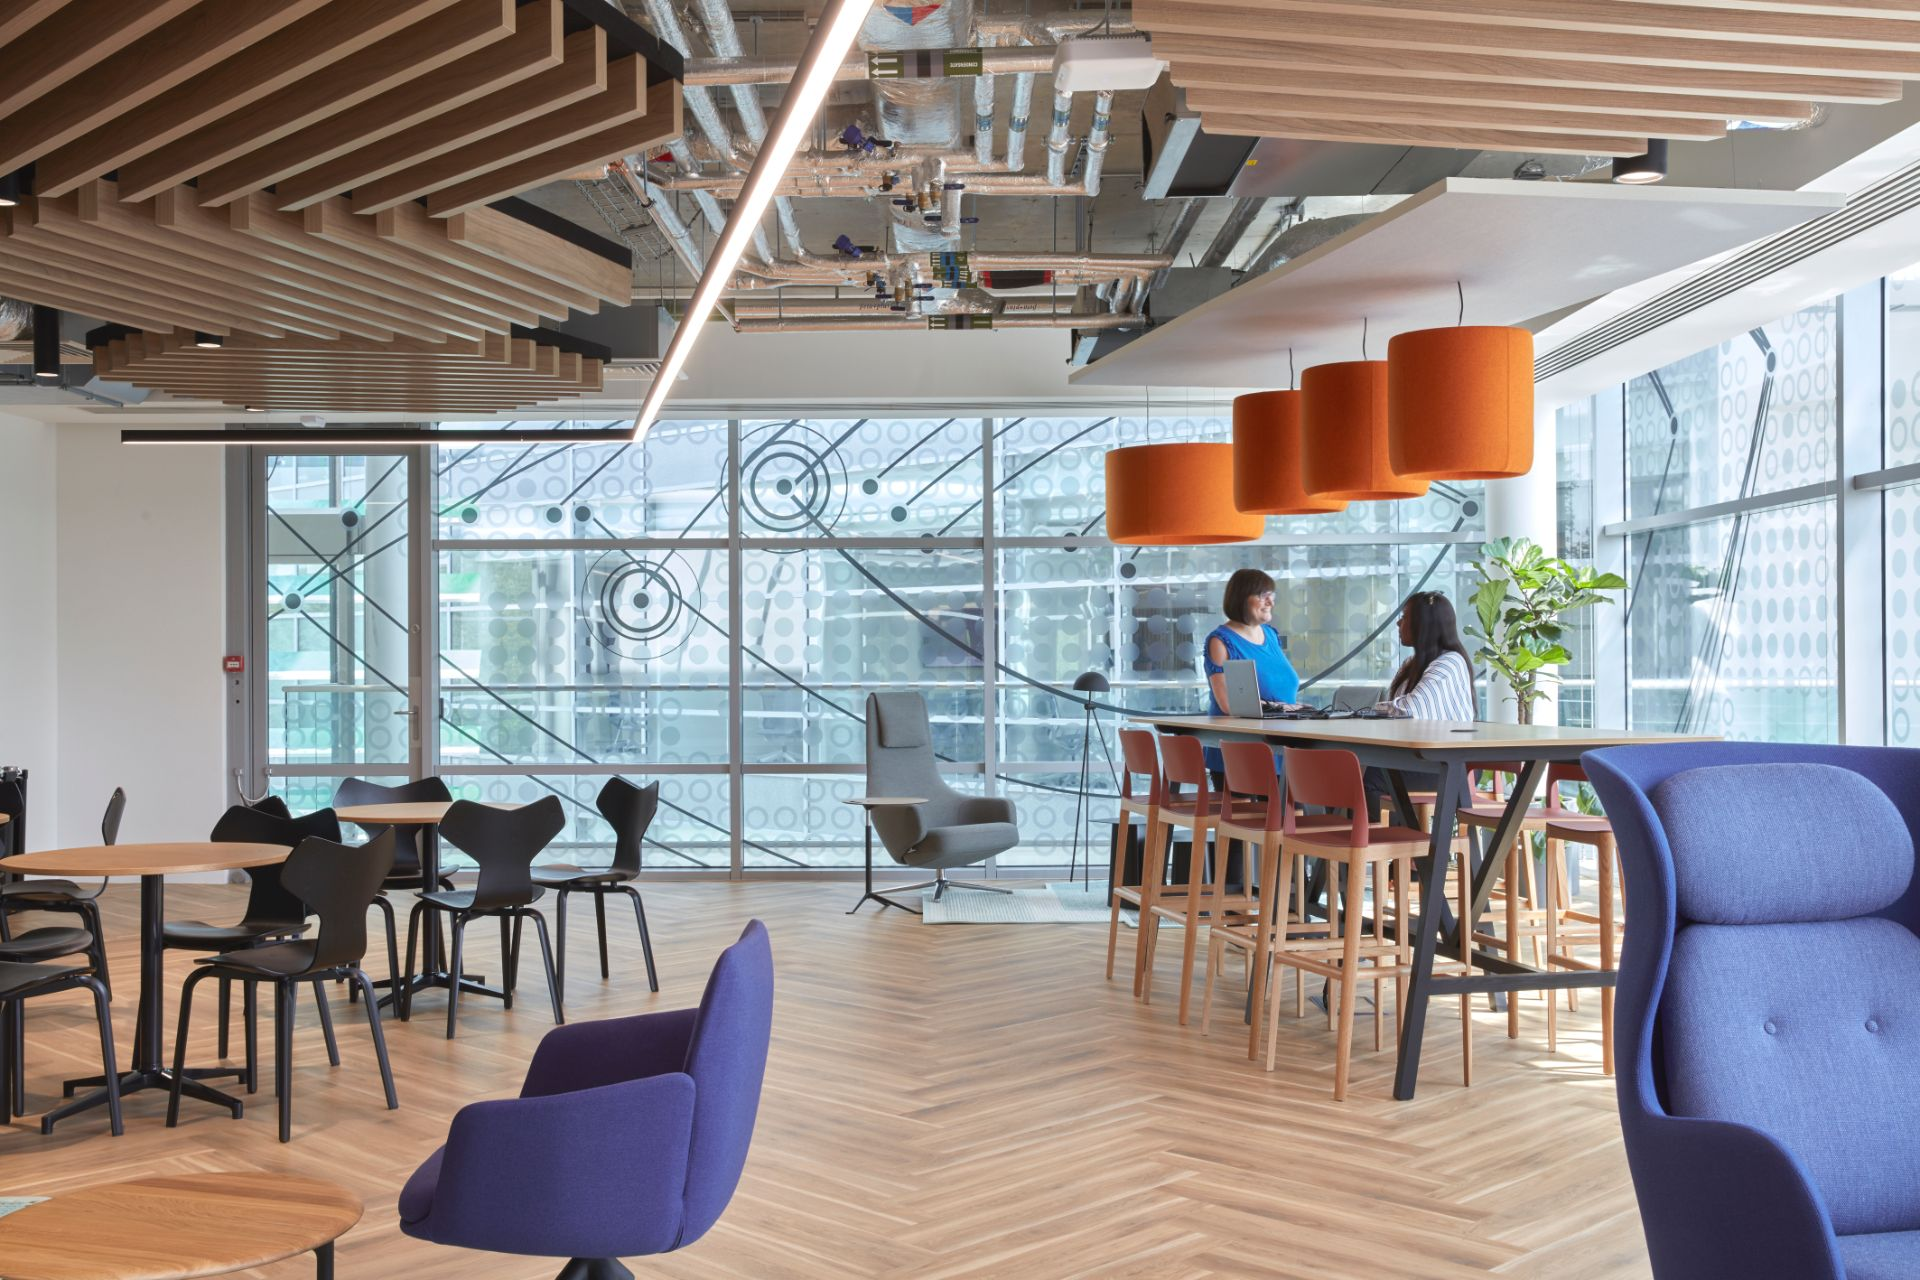 THE MAIN DESIGN BRIEF. - The main design brief was to create a contemporary workplace, tailored to the specific - angled shape of the building. The scheme is influenced by industrial style exposed ceilings and services, crisp-white dropped ceiling and acoustic panels bringing texture, a pop of colour and playfulness.